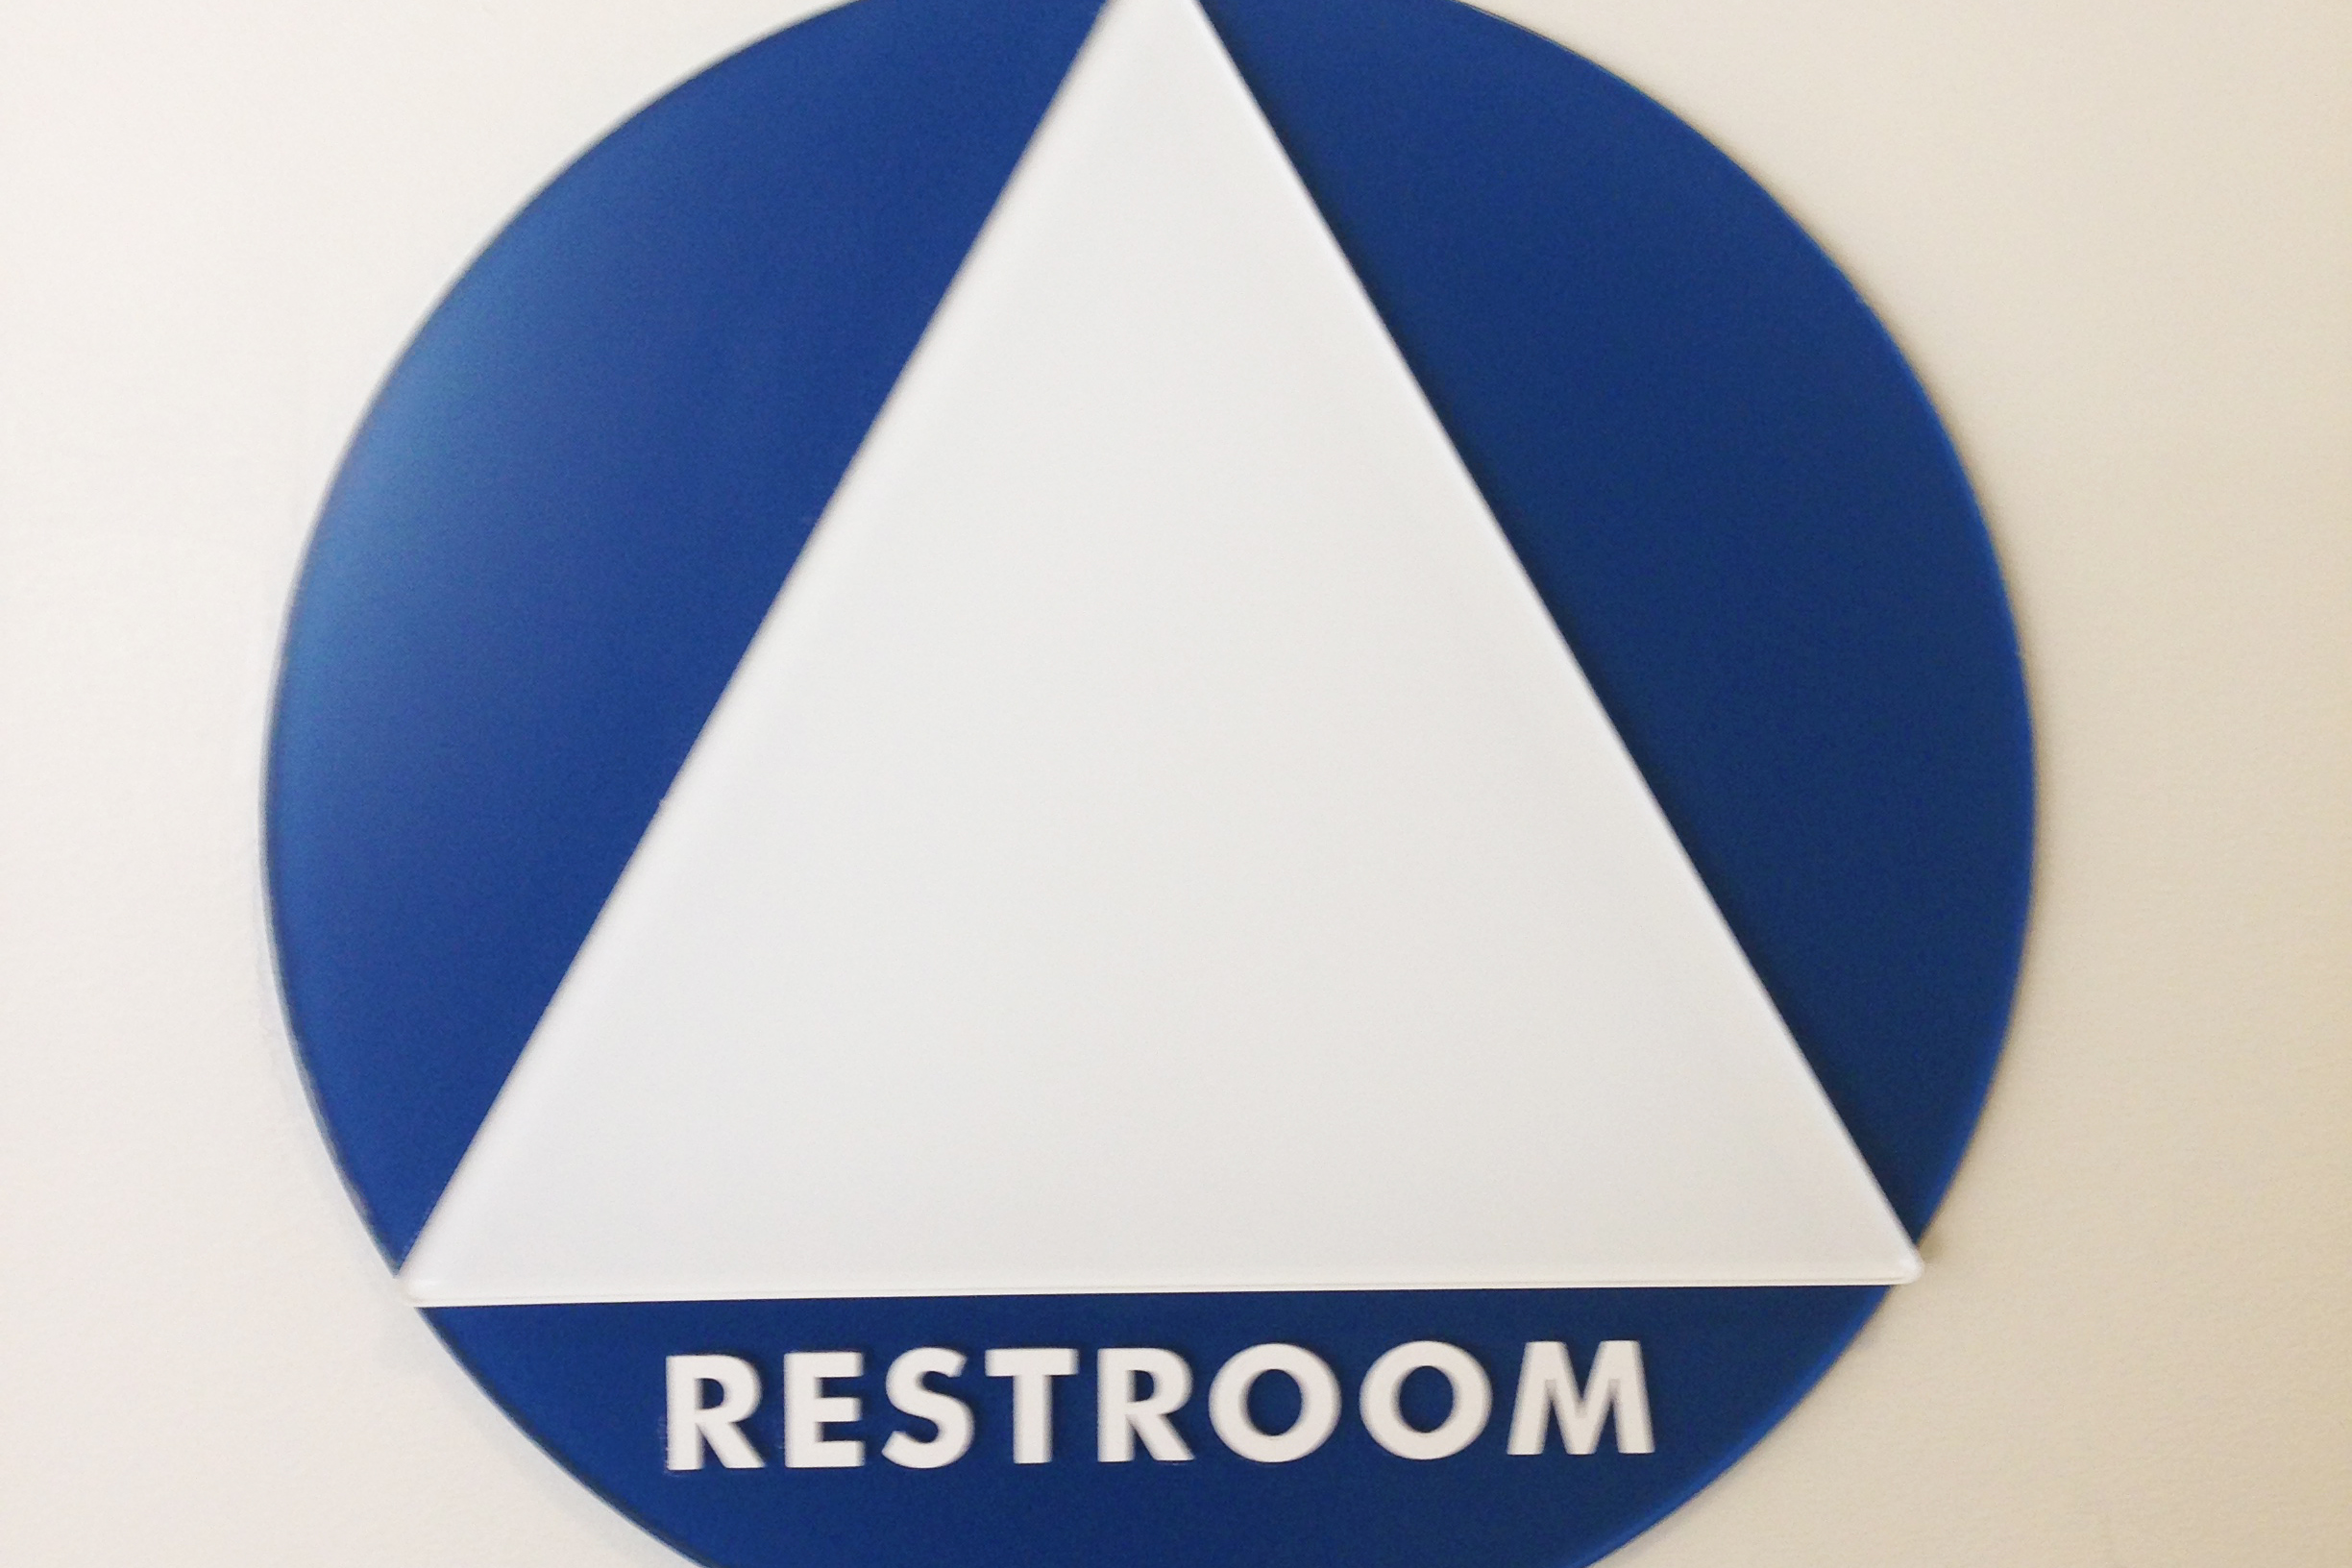 A gender neutral bathroom sign on the UCSD campus.